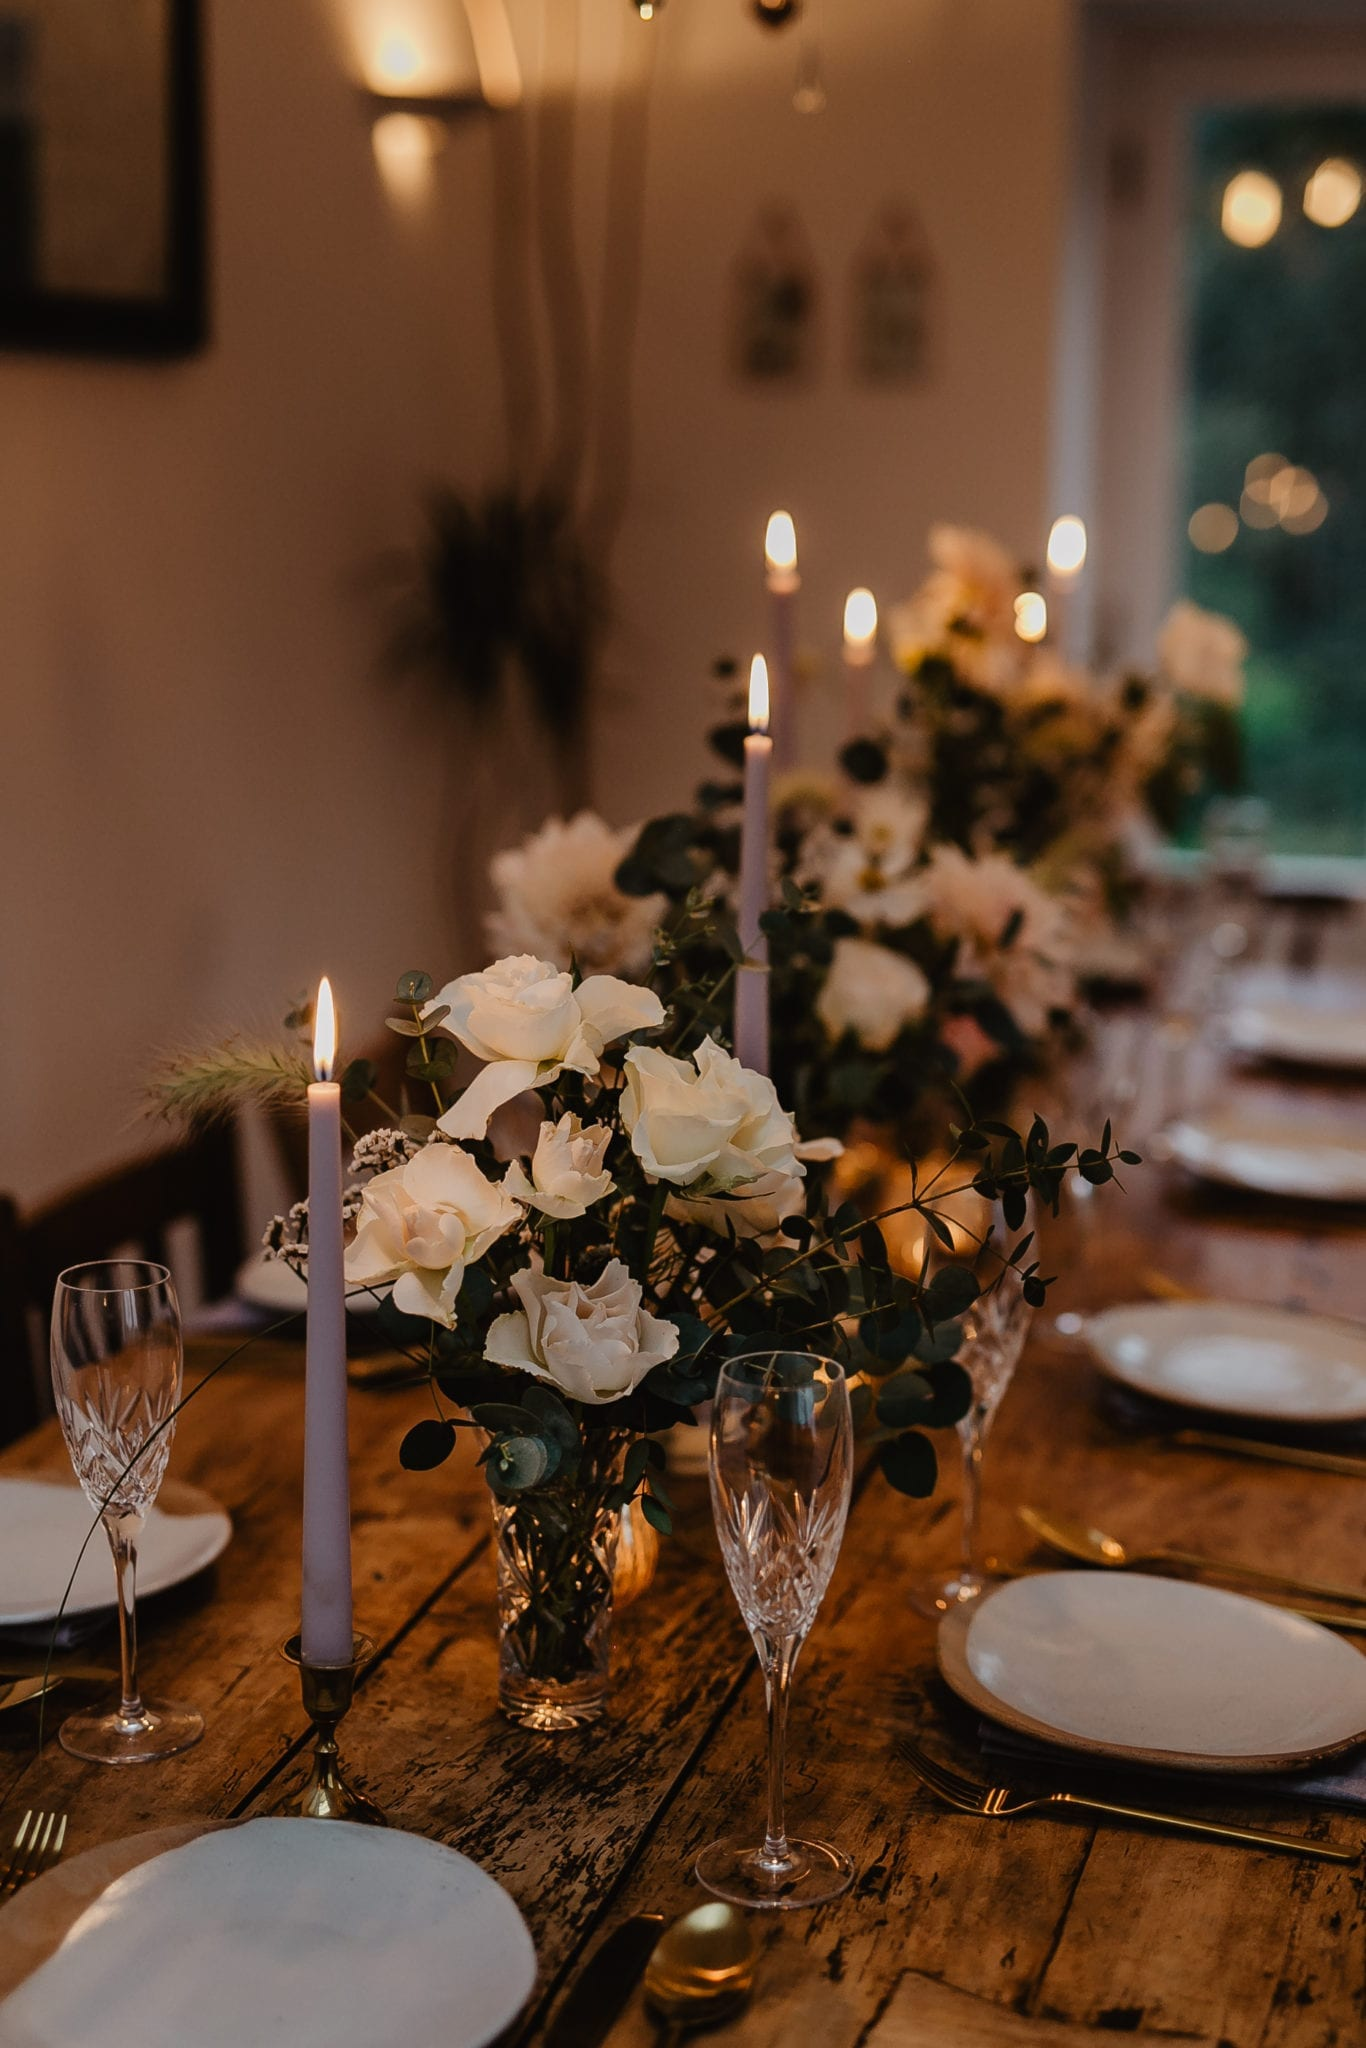 Elegantly styled wedding breakfast table with rustic place settings and country flowers